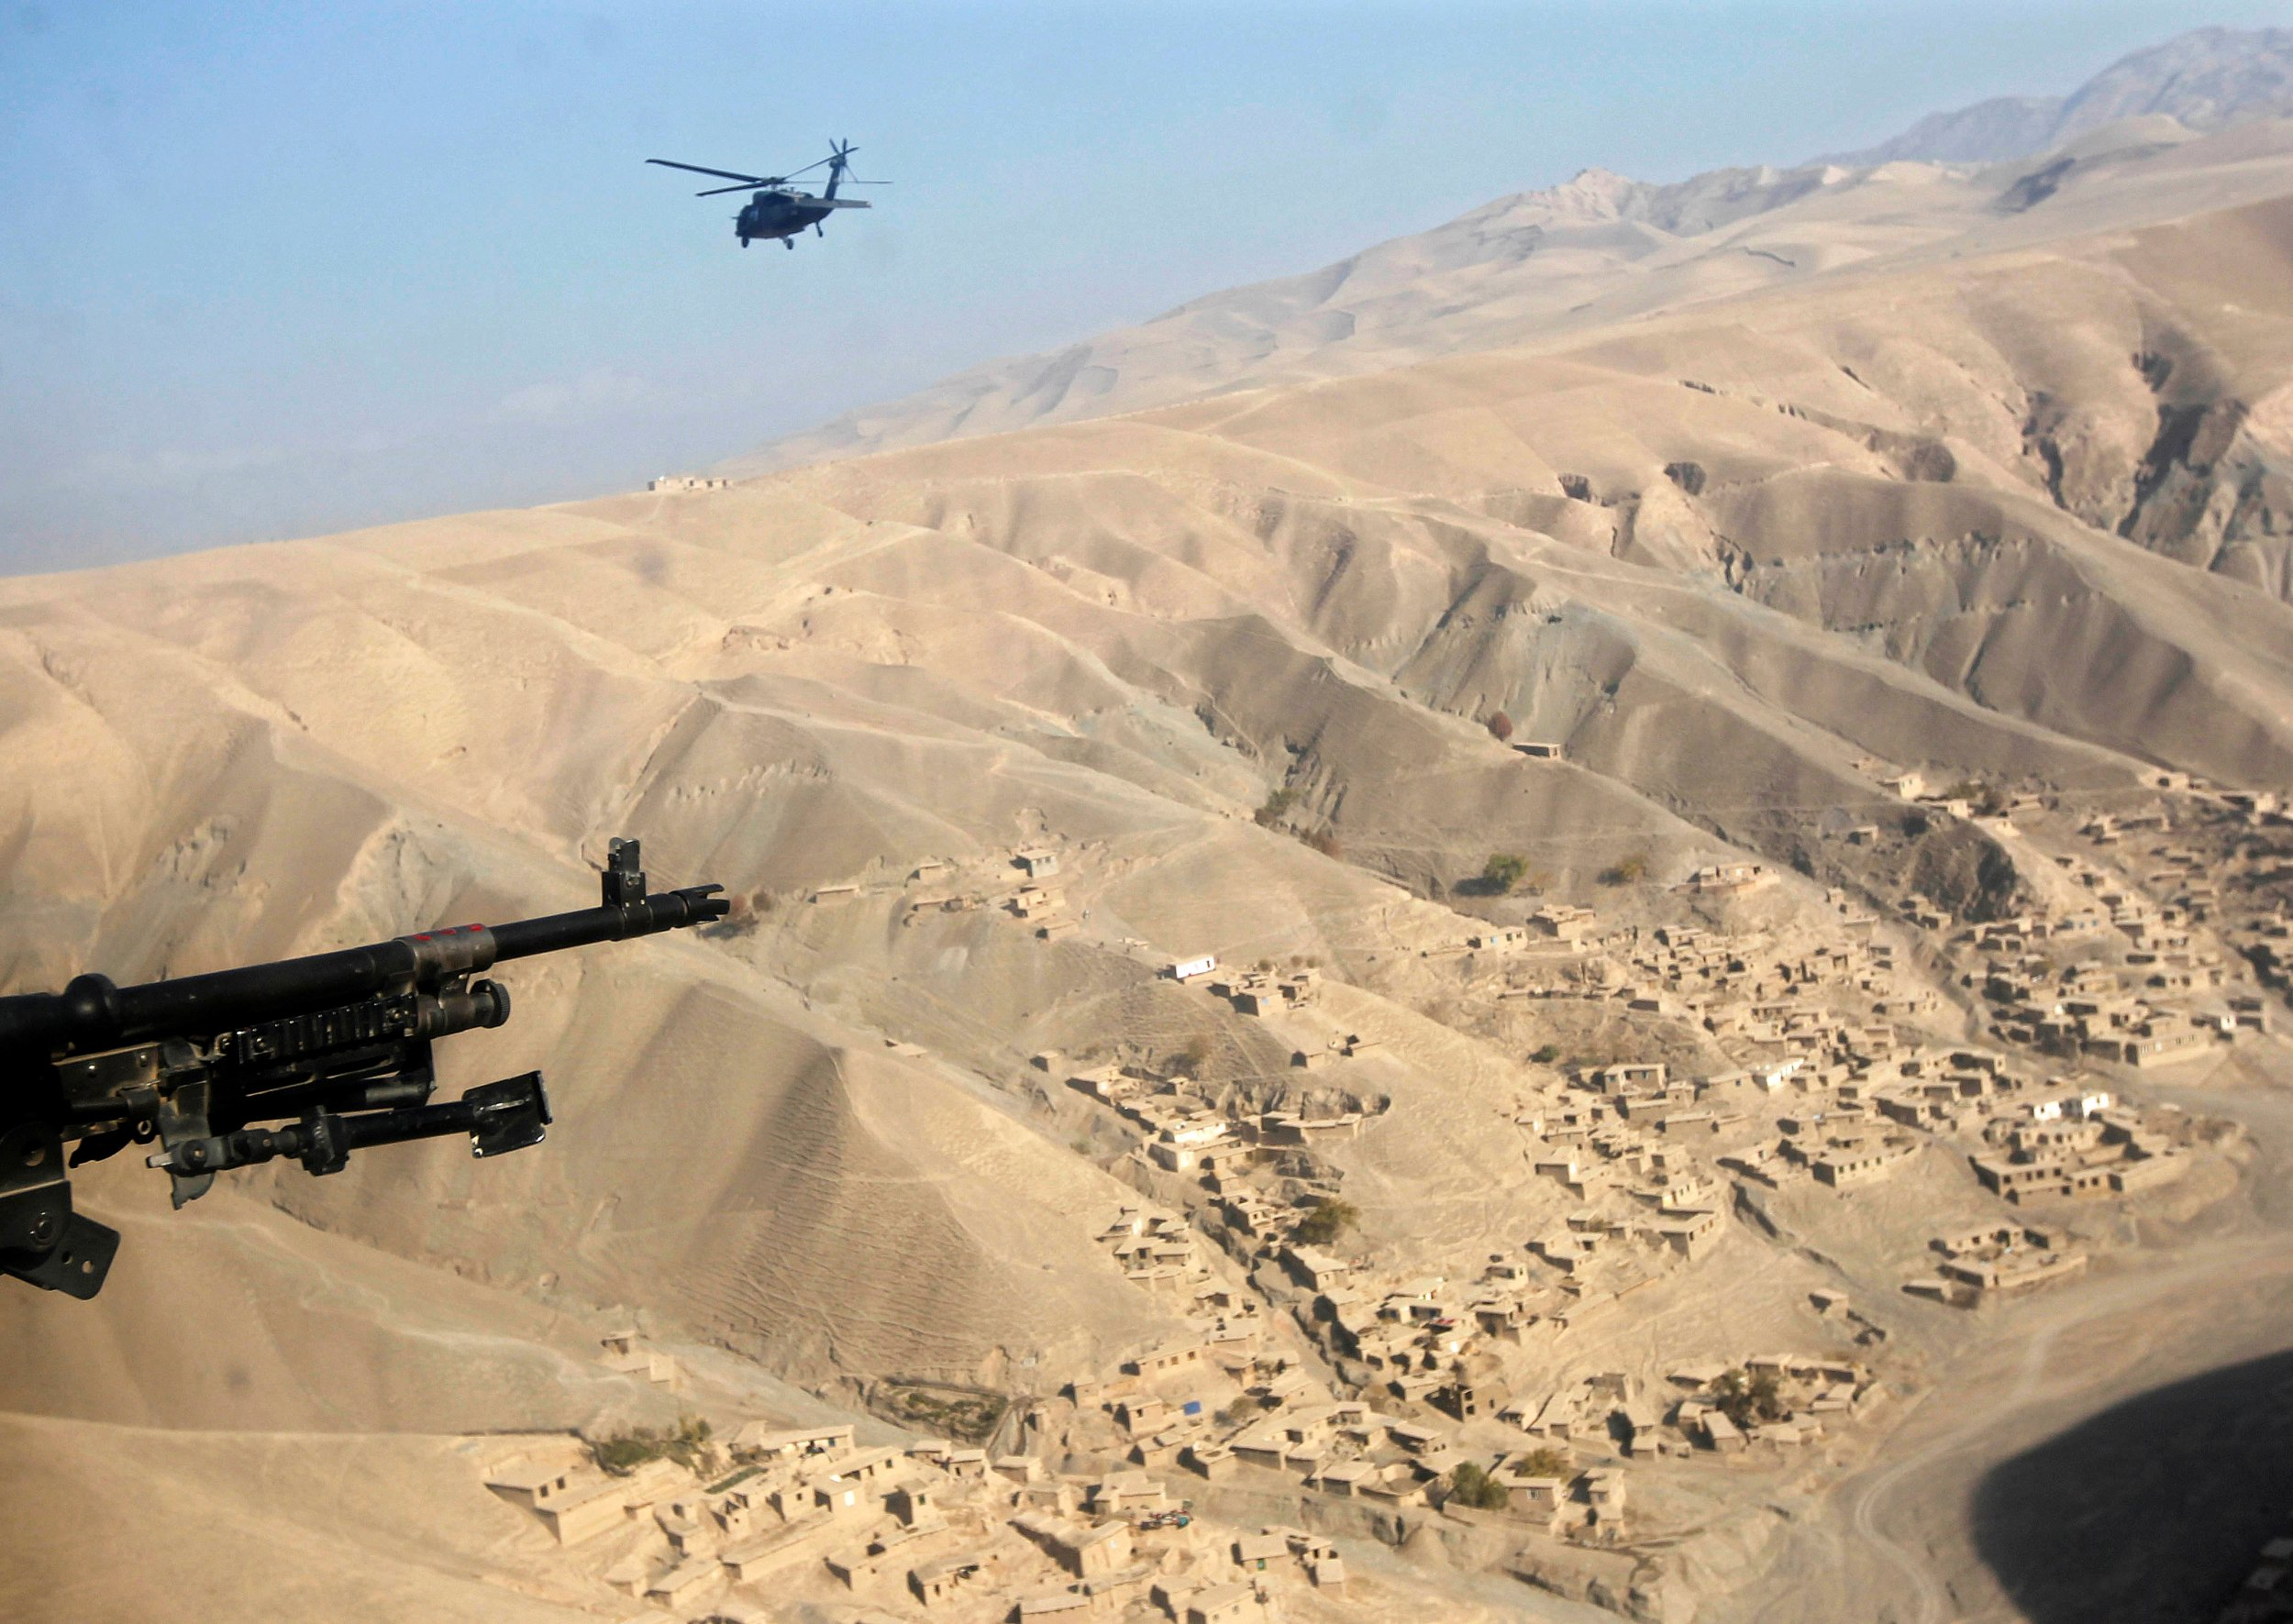 No, Trump can't pay for Afghan war with country's minerals, yet